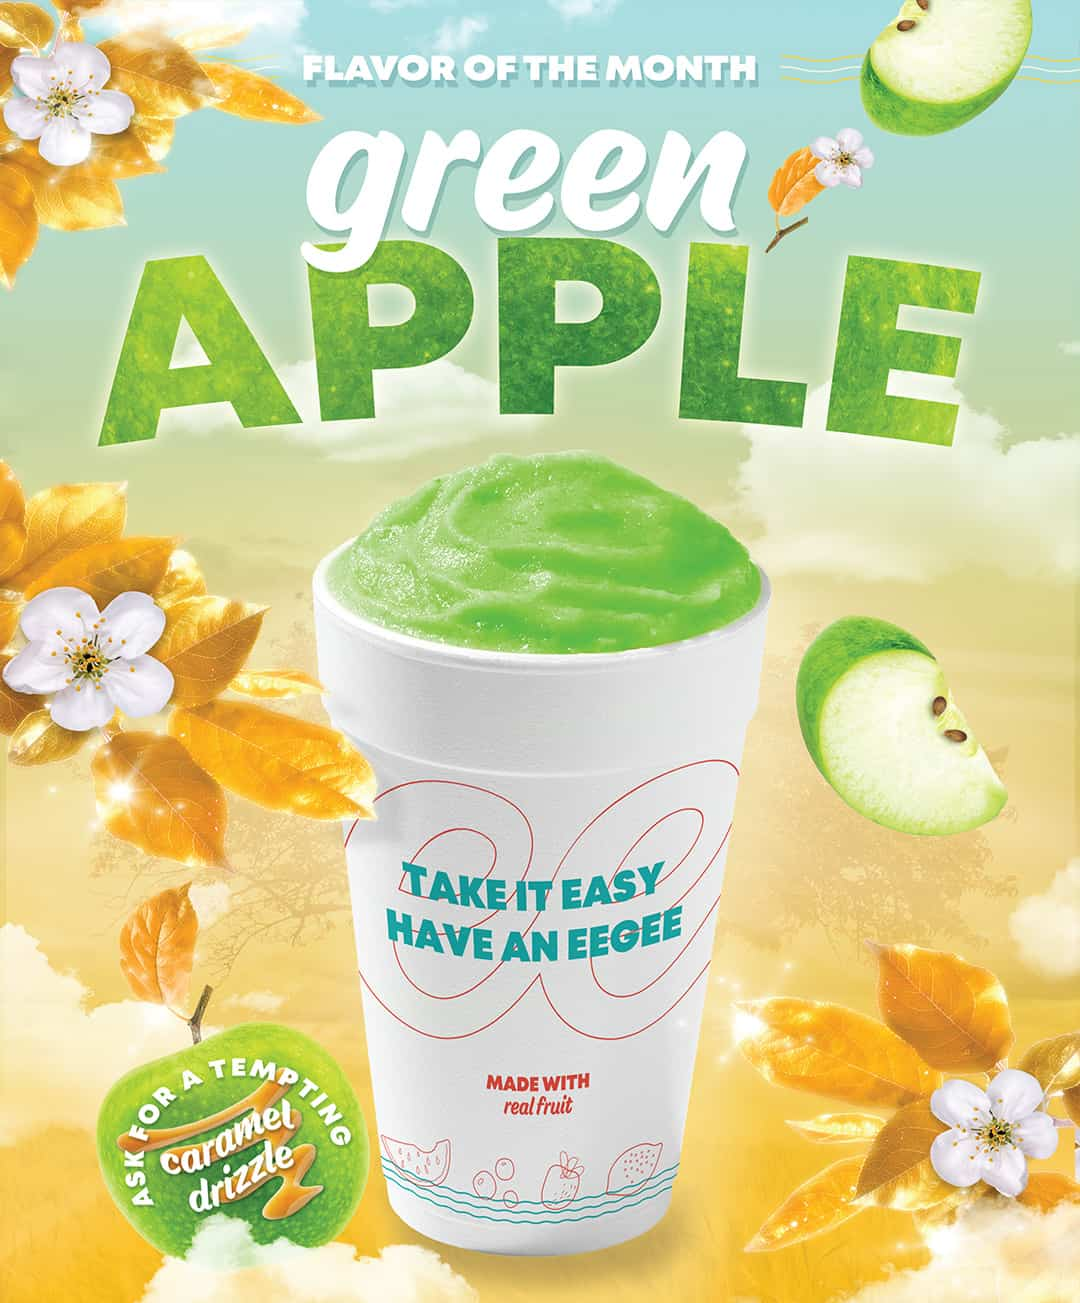 Monthly Restaurant Marketing & Advertising - Green Apple eegee